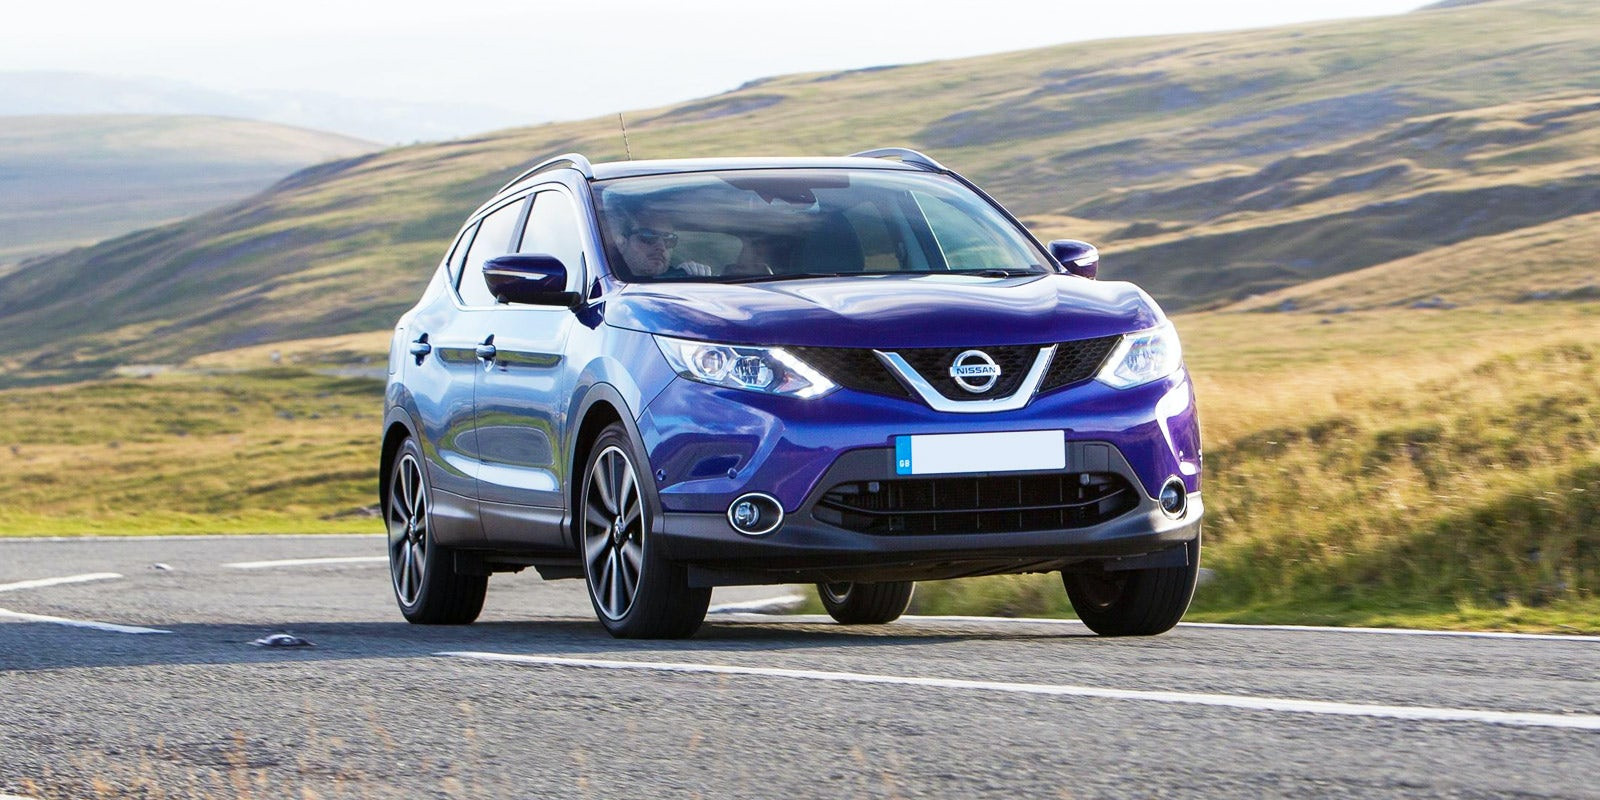 used nissan qashqai buying guide 2014 present carwow. Black Bedroom Furniture Sets. Home Design Ideas